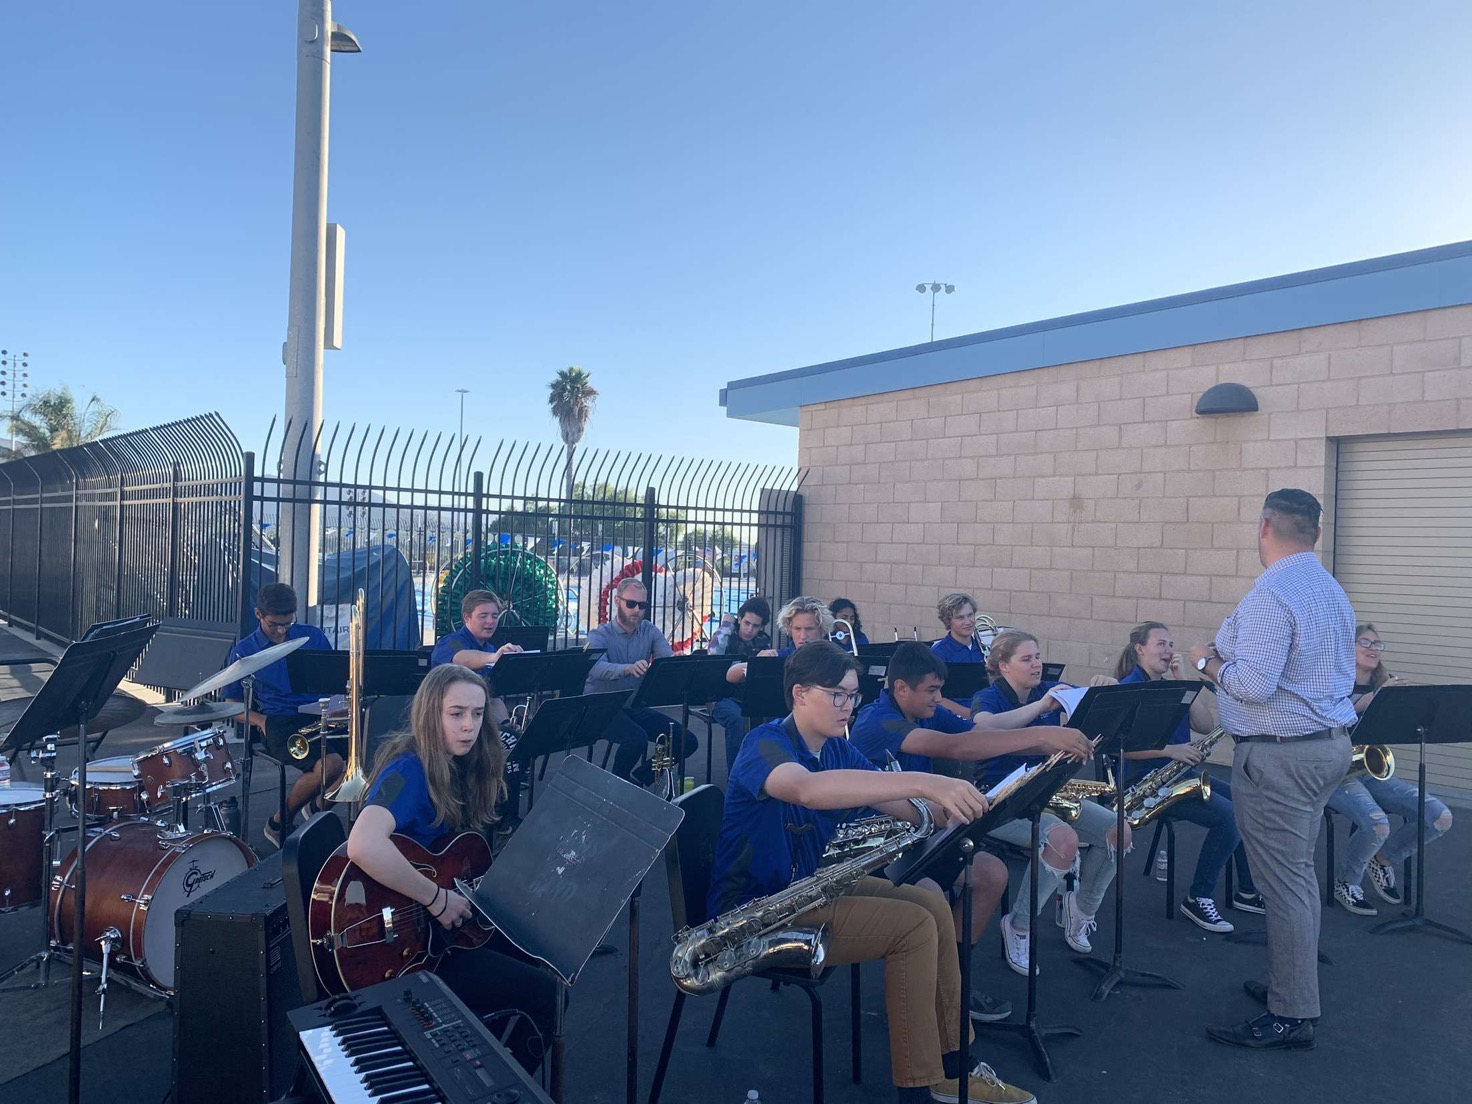 Band performs at Back To School Night on October 7, 2019.